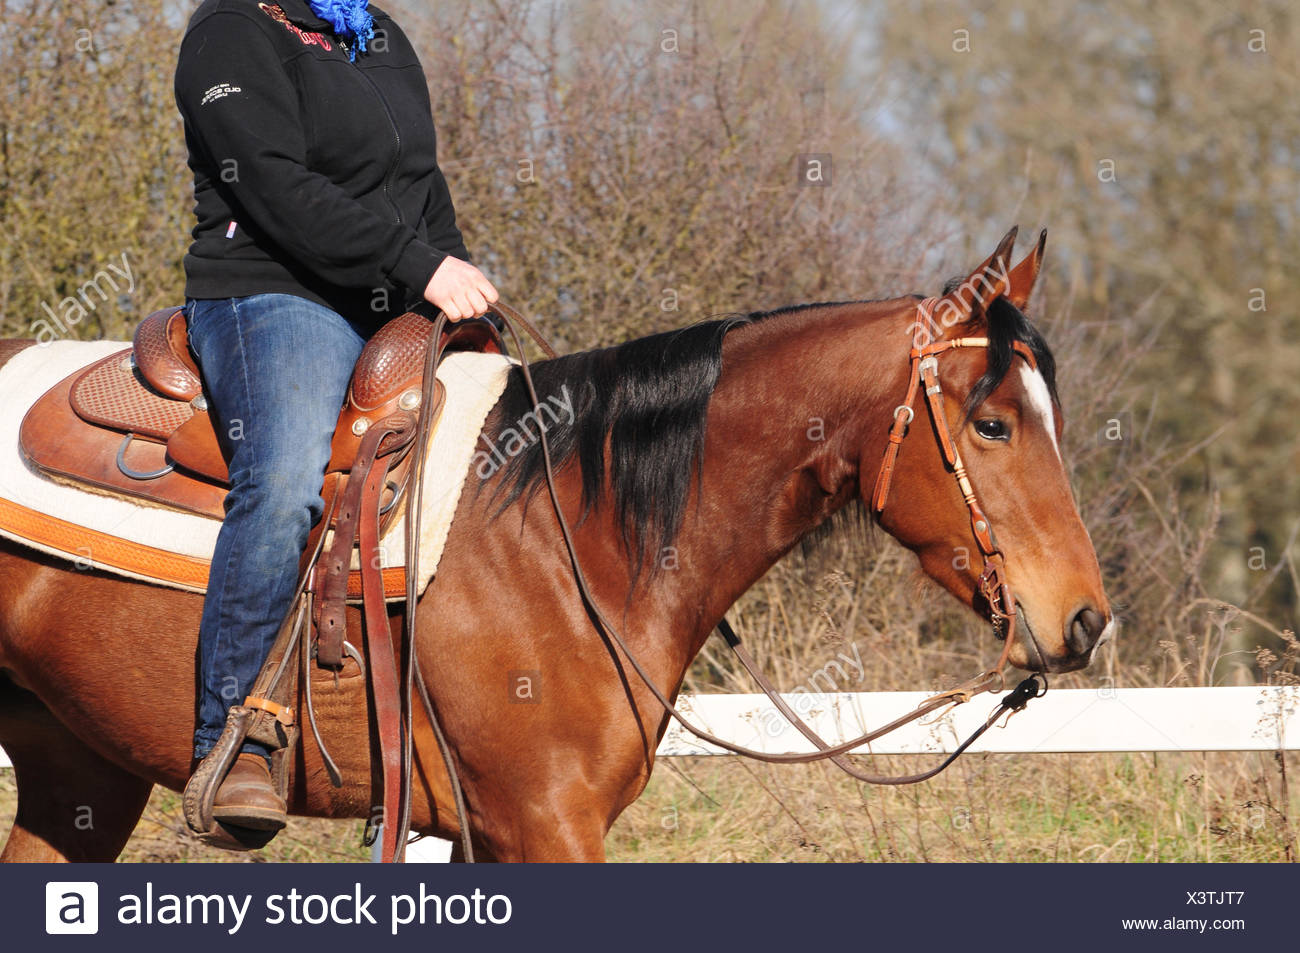 Western Riding American Quarter Horse Mare Workout Western Tack Snaffle With Shanks Western Saddle Stock Saddle Stock Photo Alamy